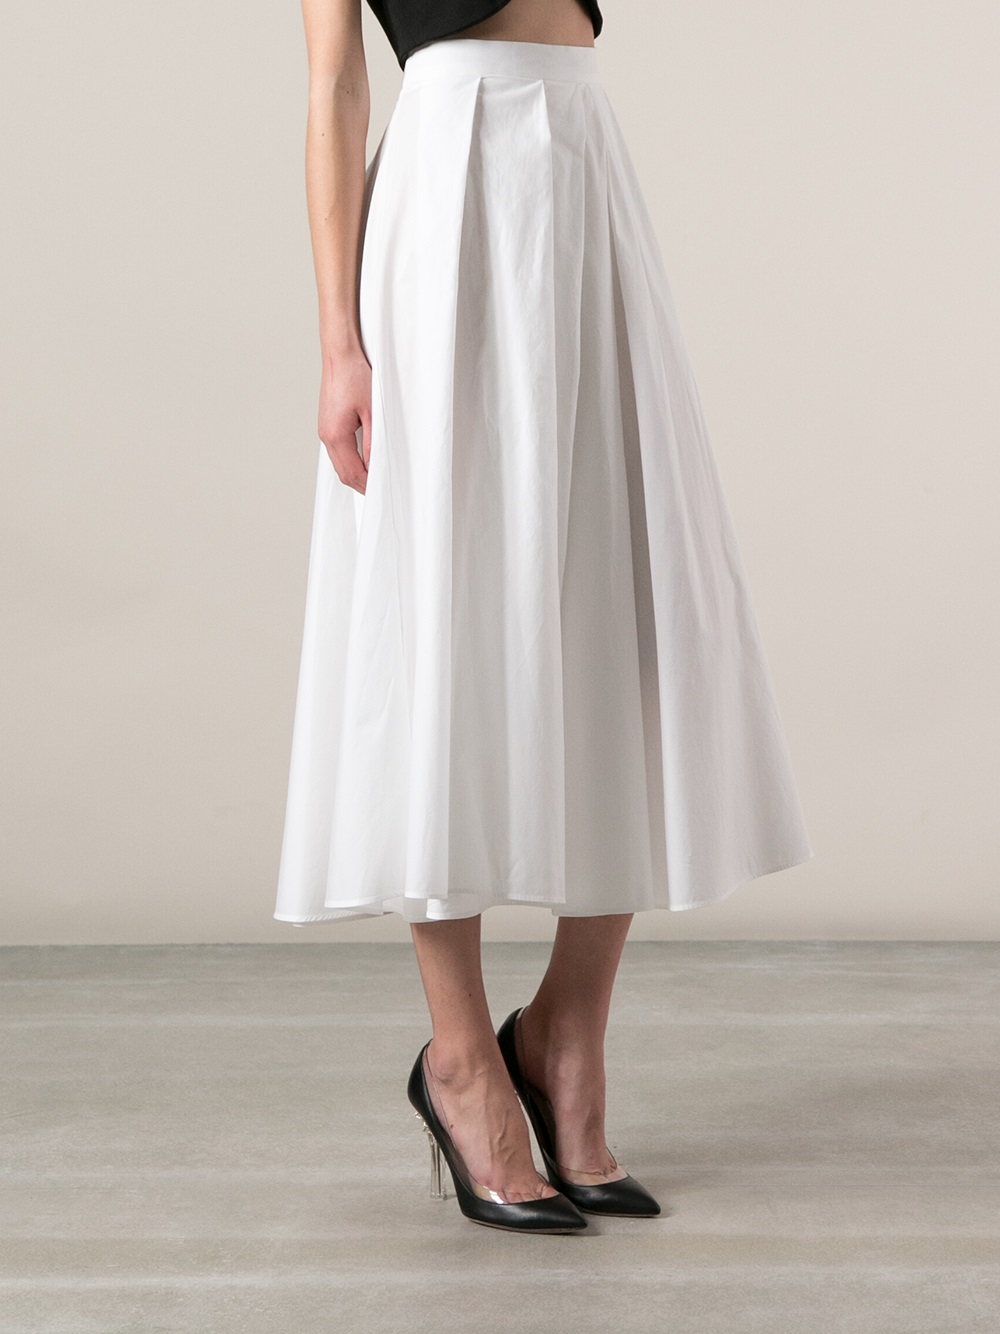 Antonio marras Pleated A-Line Skirt in White | Lyst